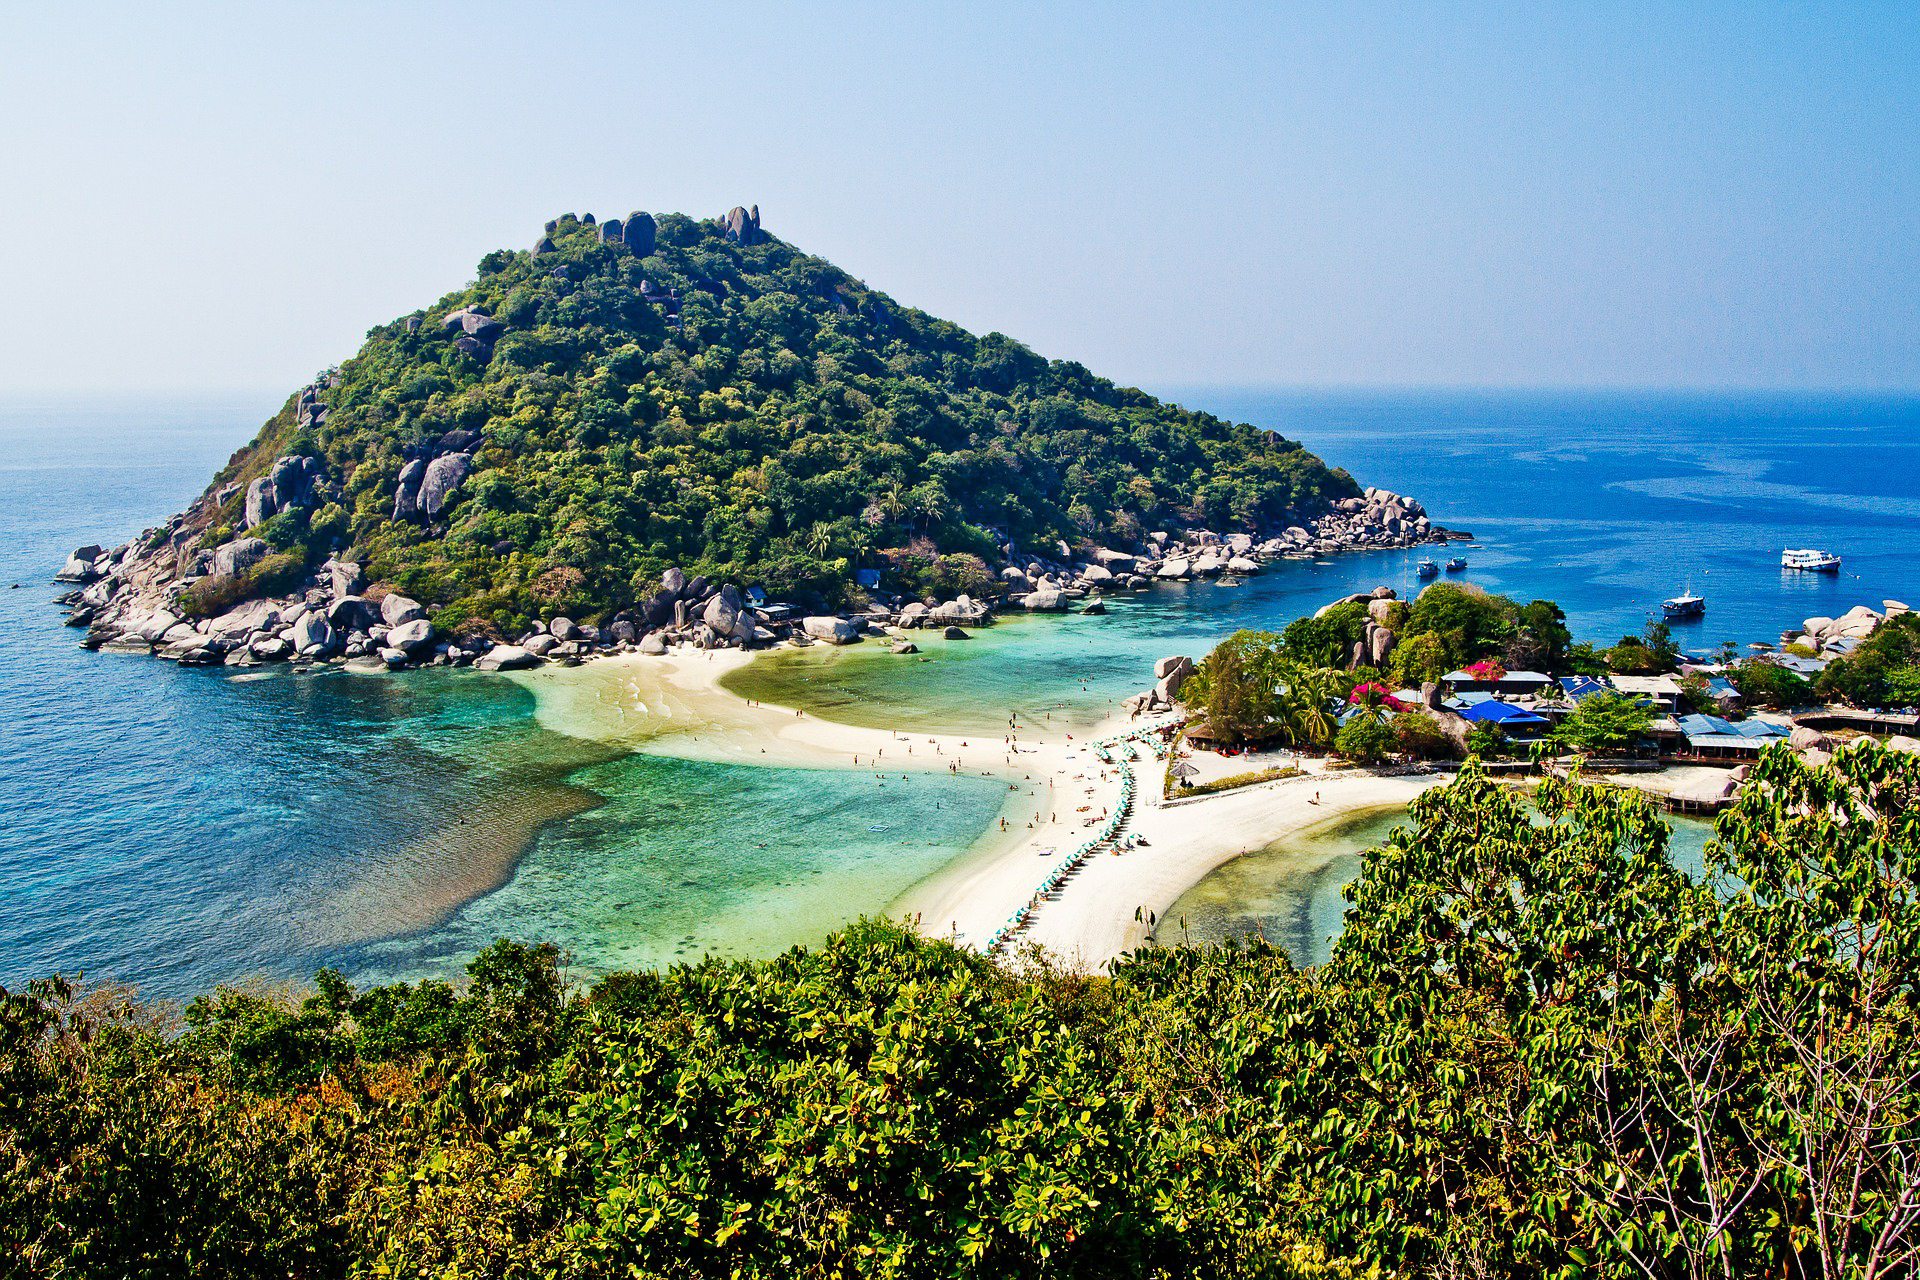 Ko Tao is pretty busy these days, but it's still beautiful. Image by  Poswiecie